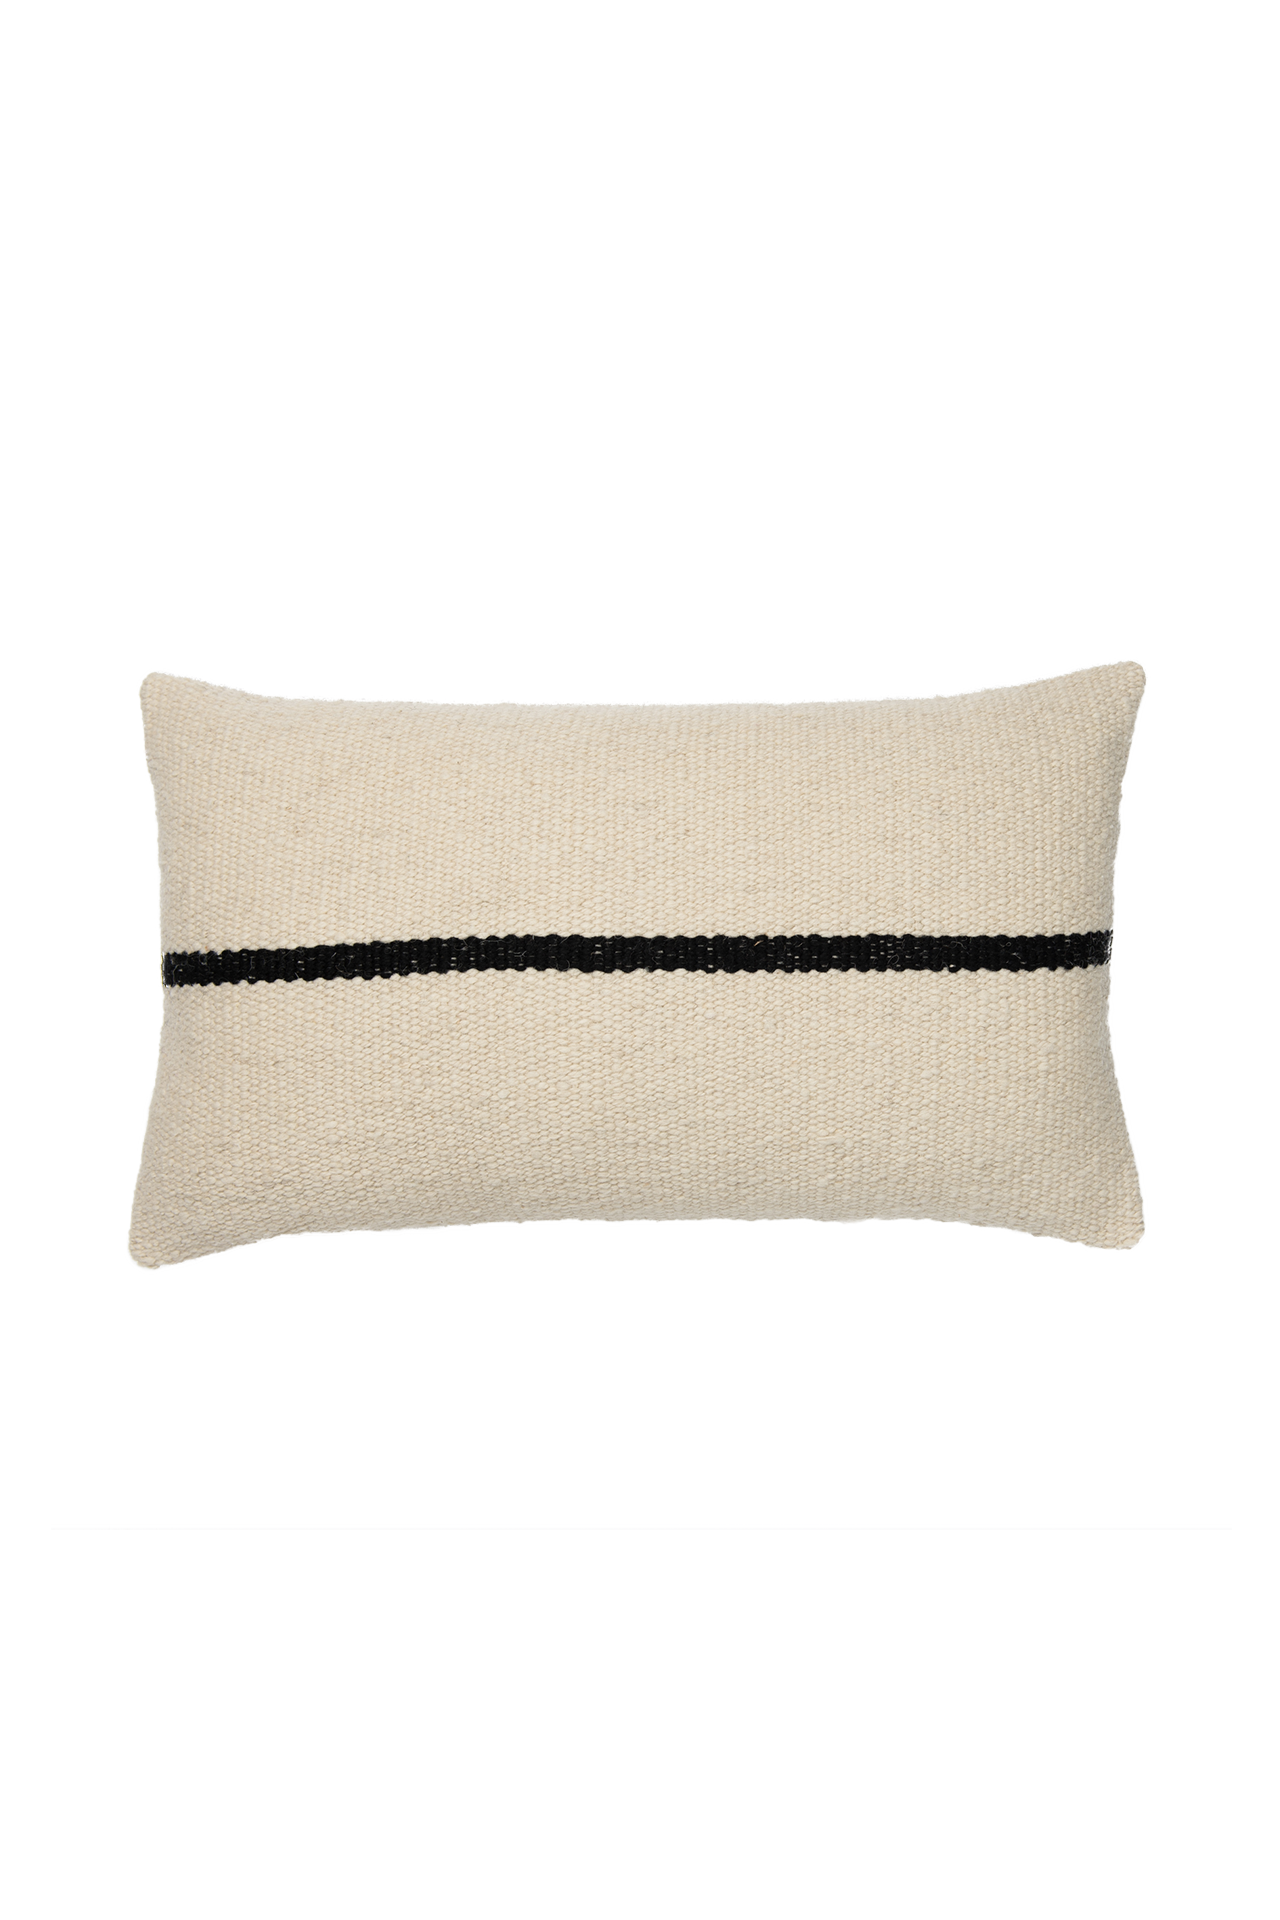 Campo Handwoven Pillow